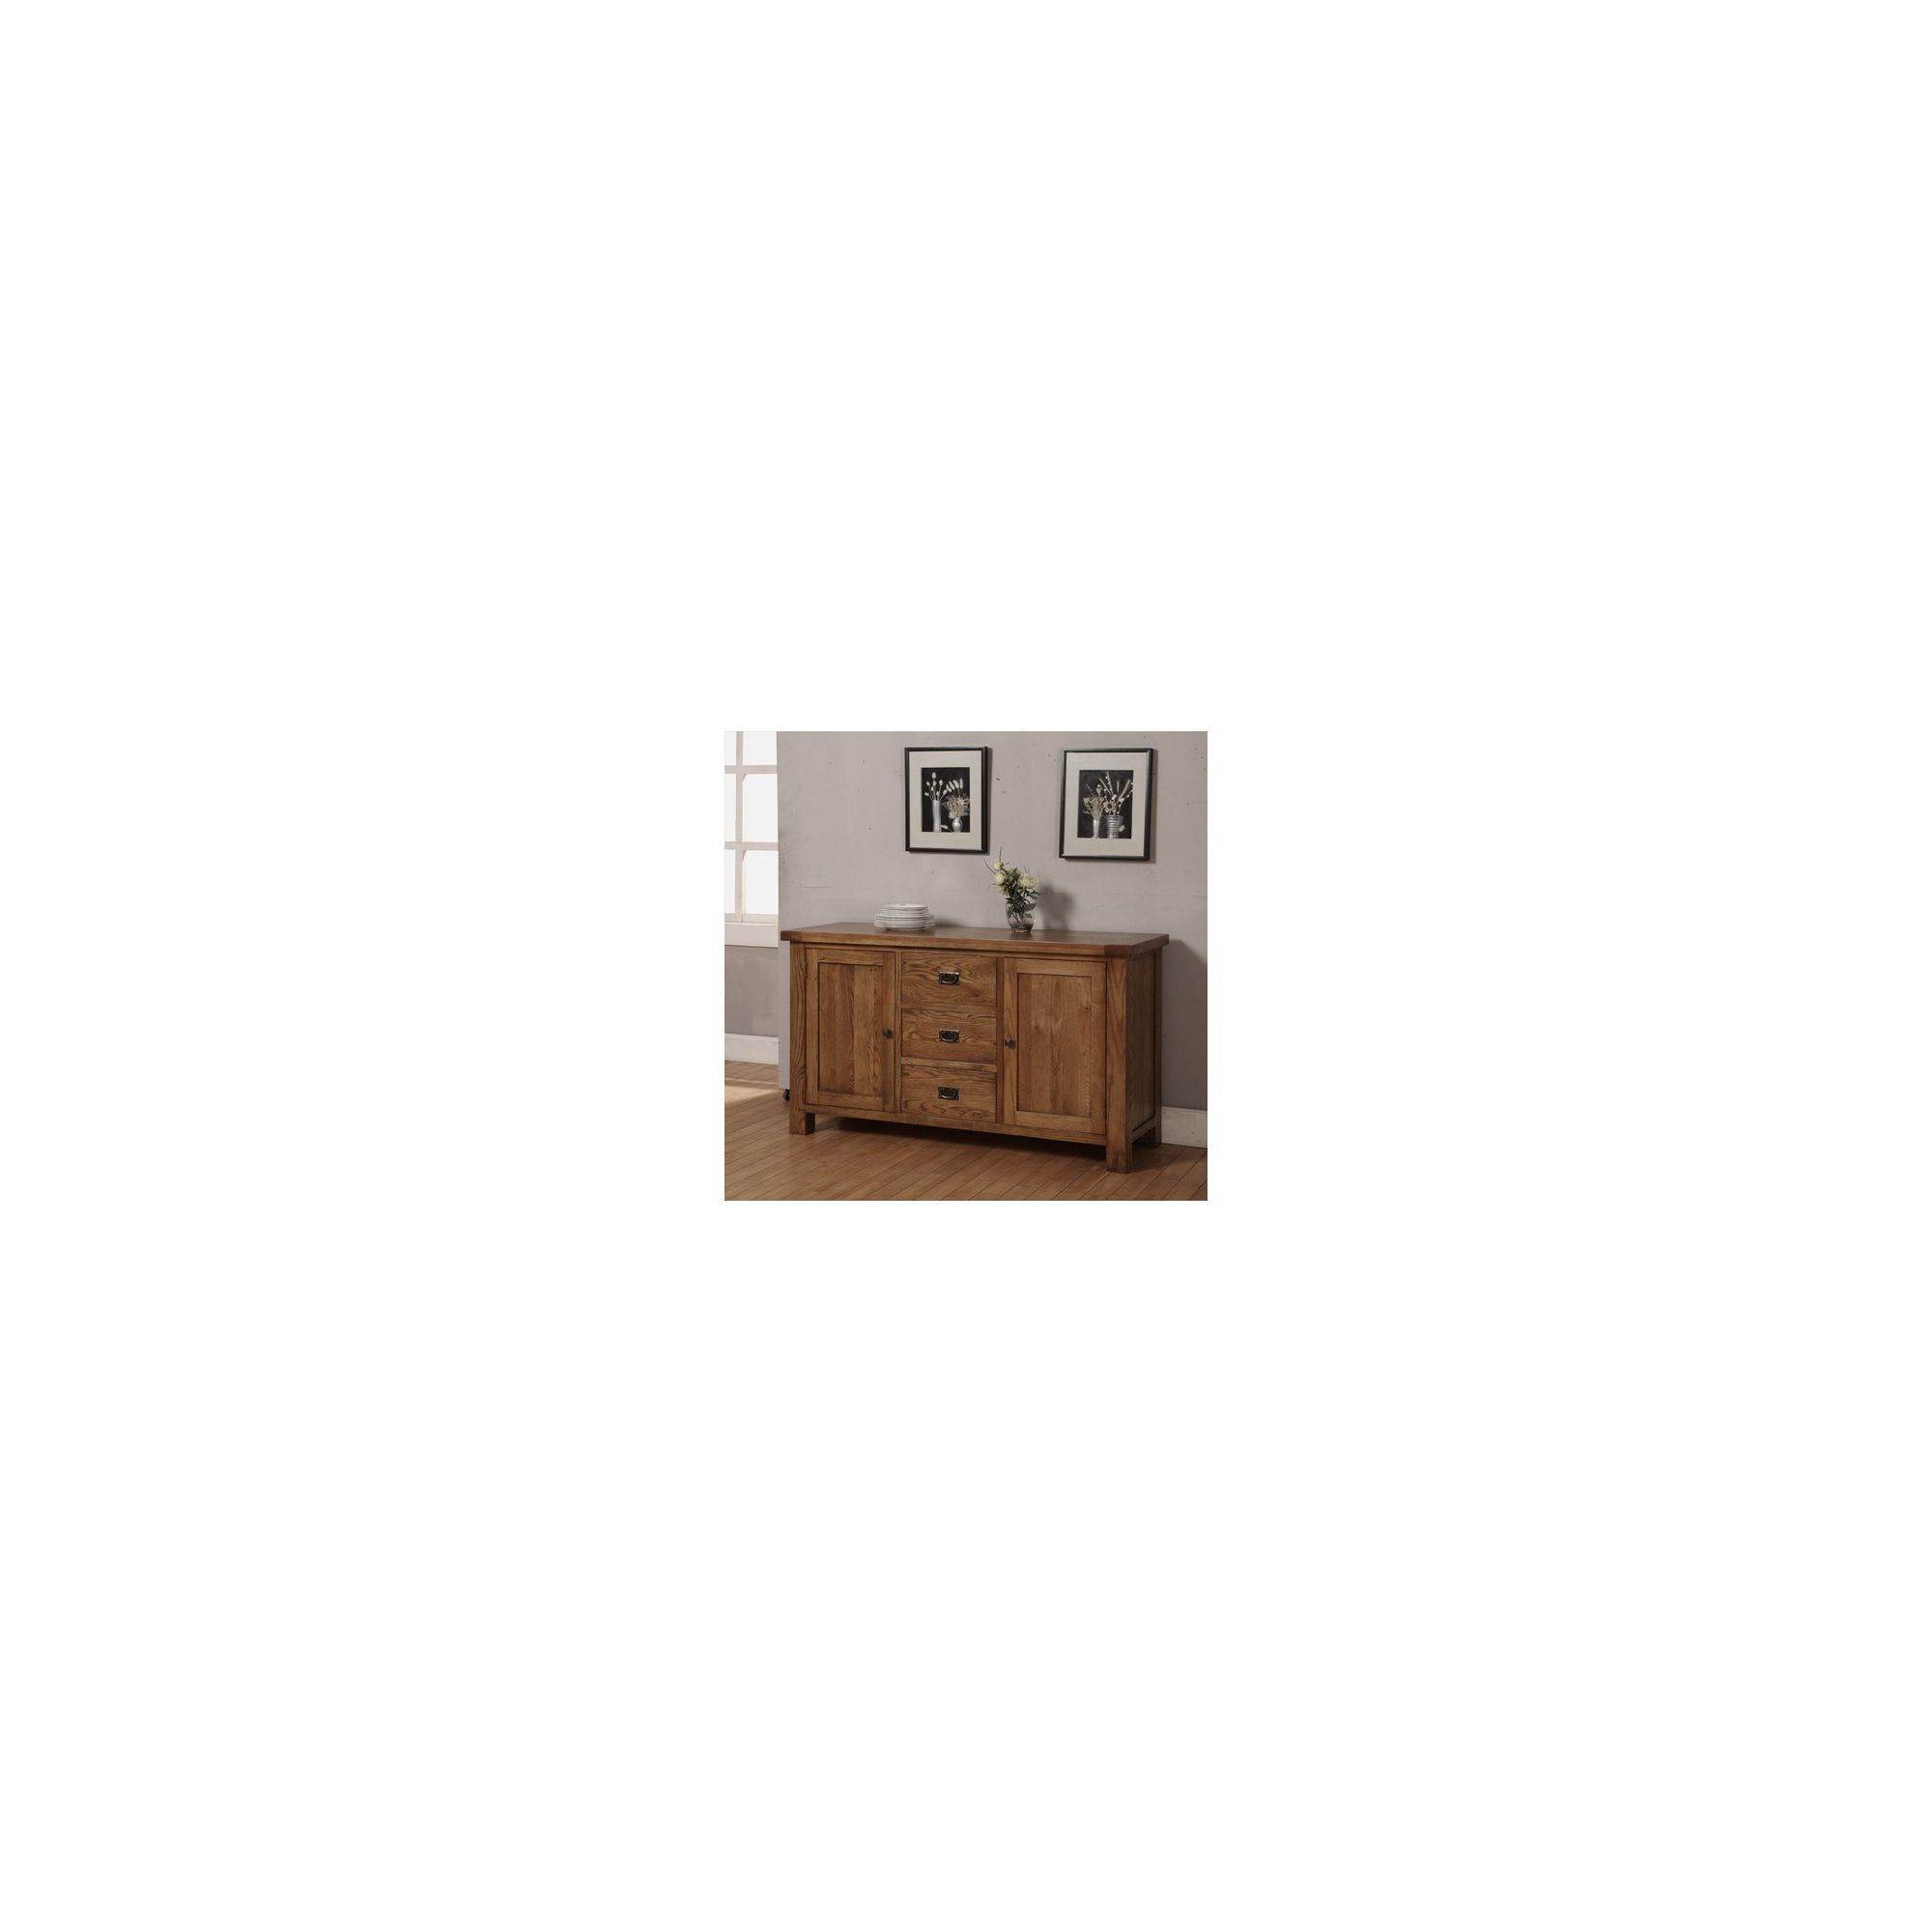 Hawkshead Brooklyn Three Drawer and Two Door Dresser in Rich Patina at Tesco Direct